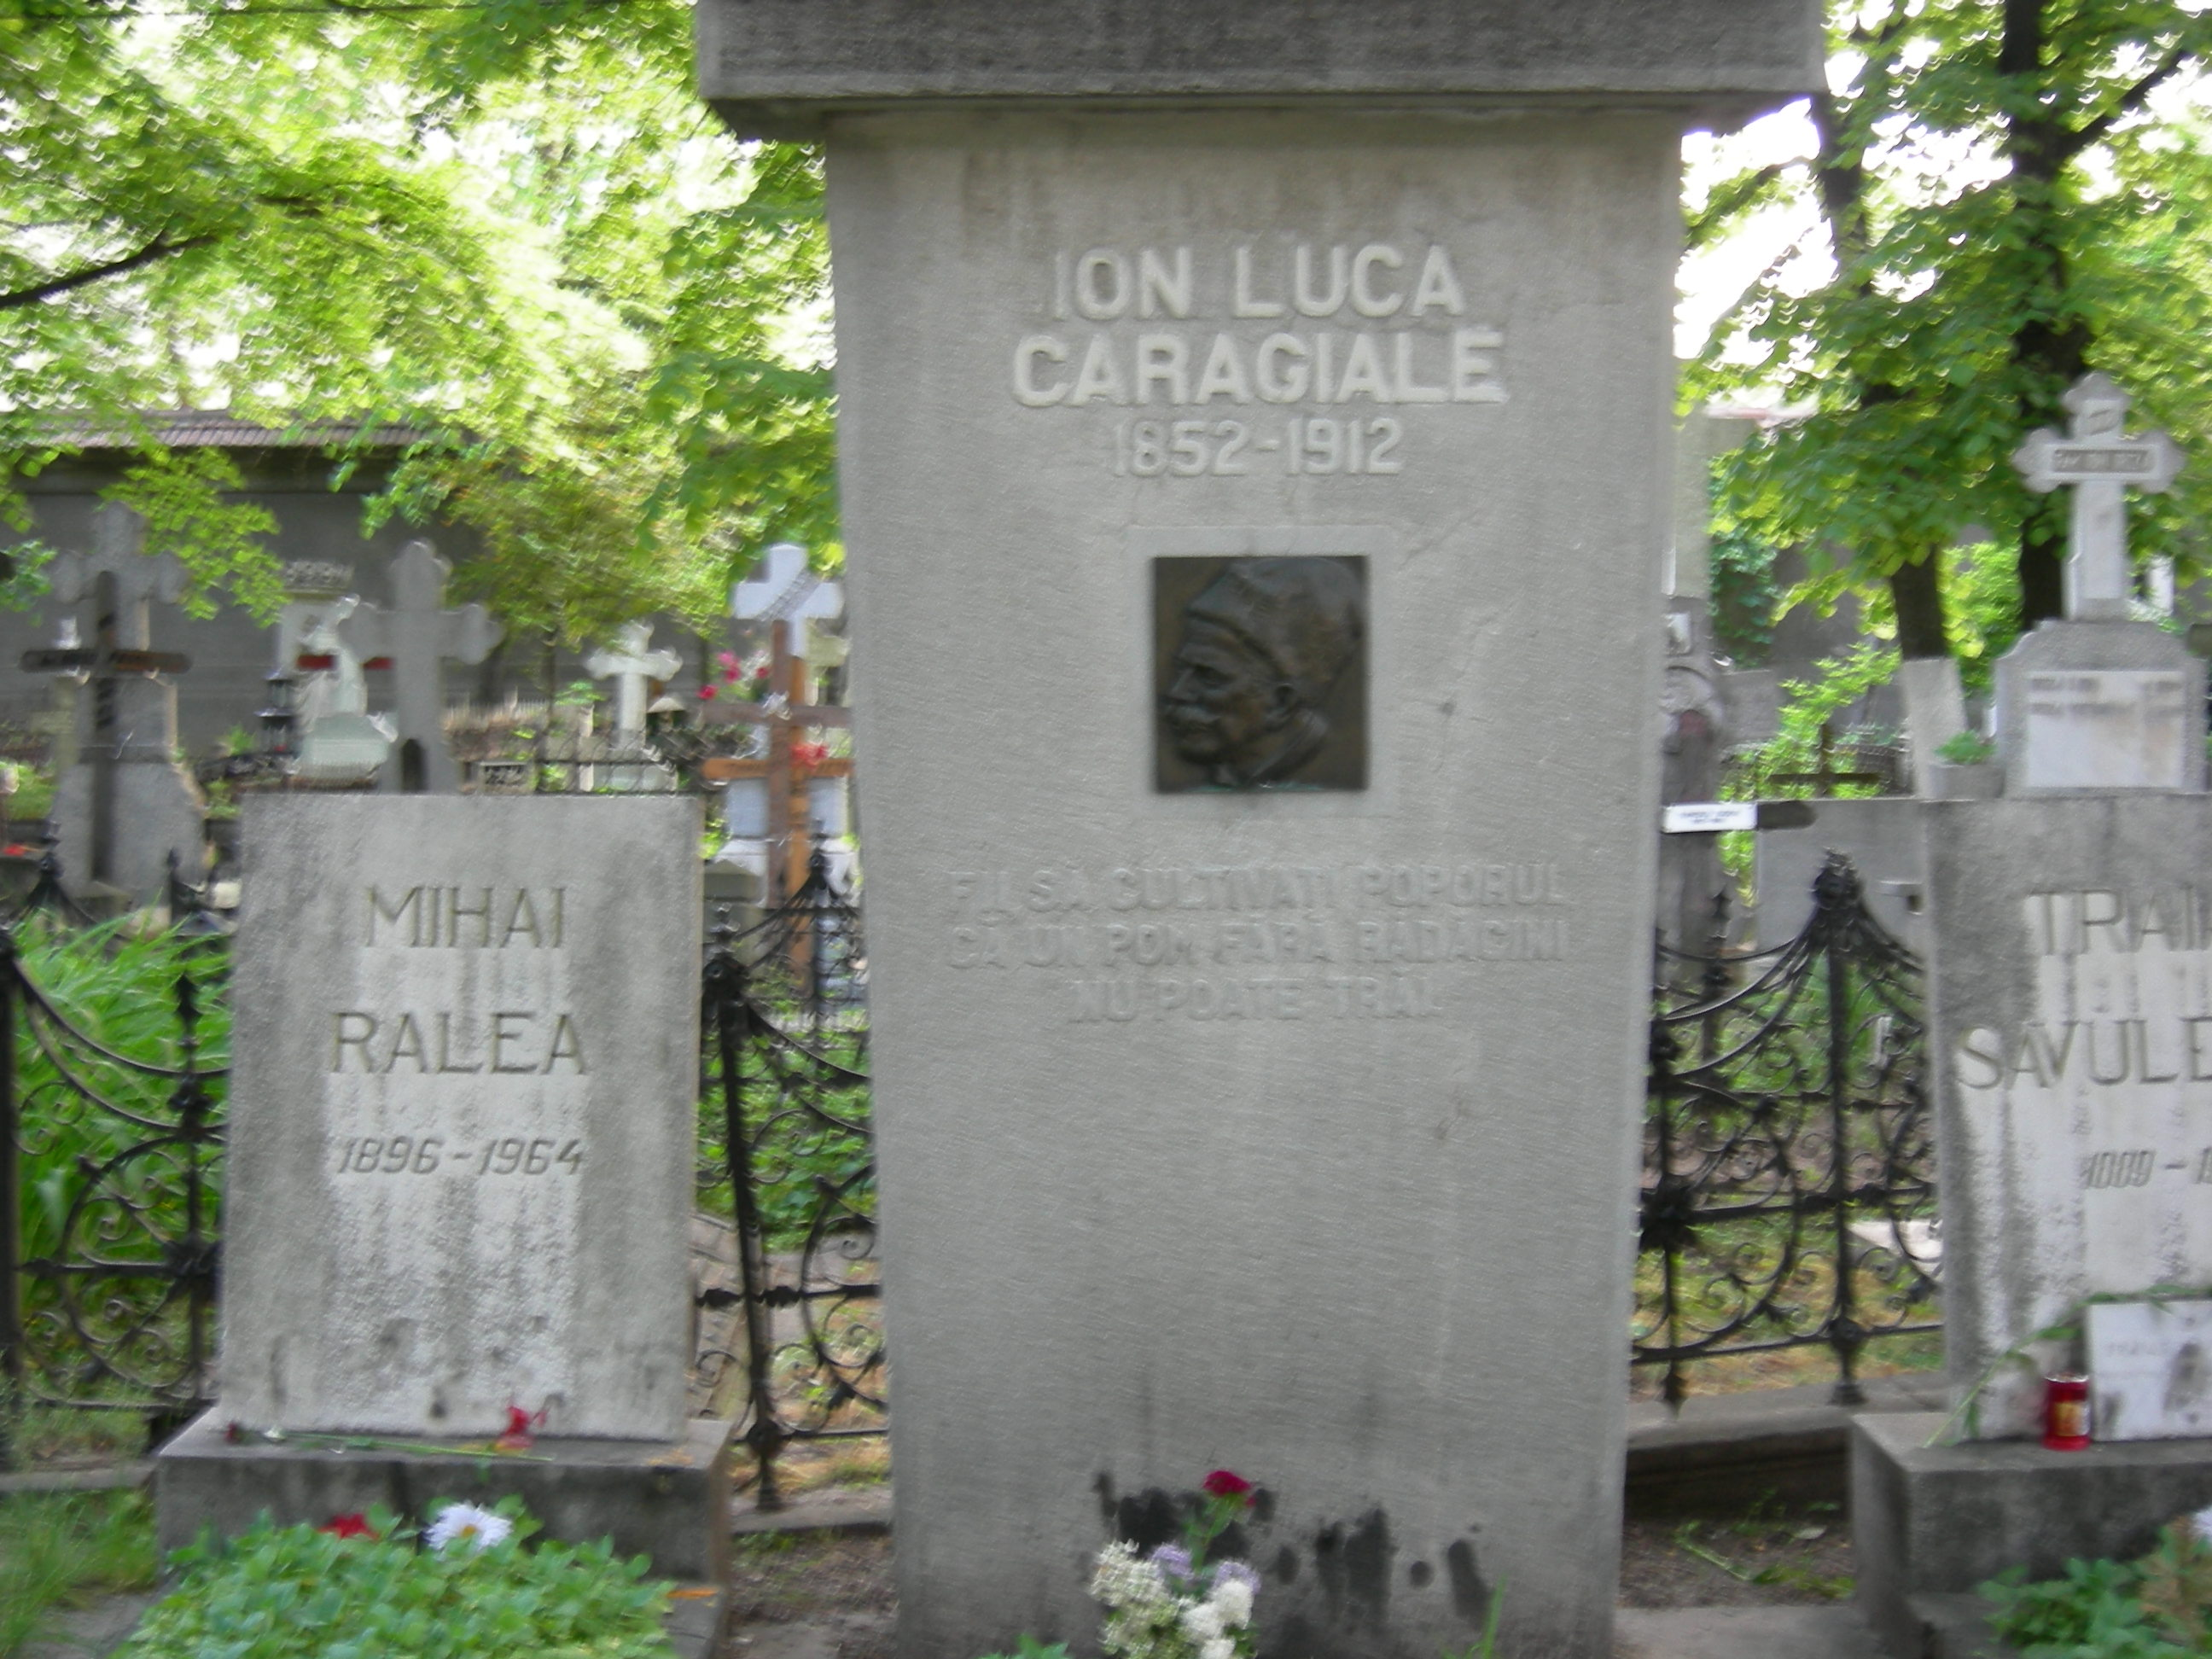 Caragiale grave